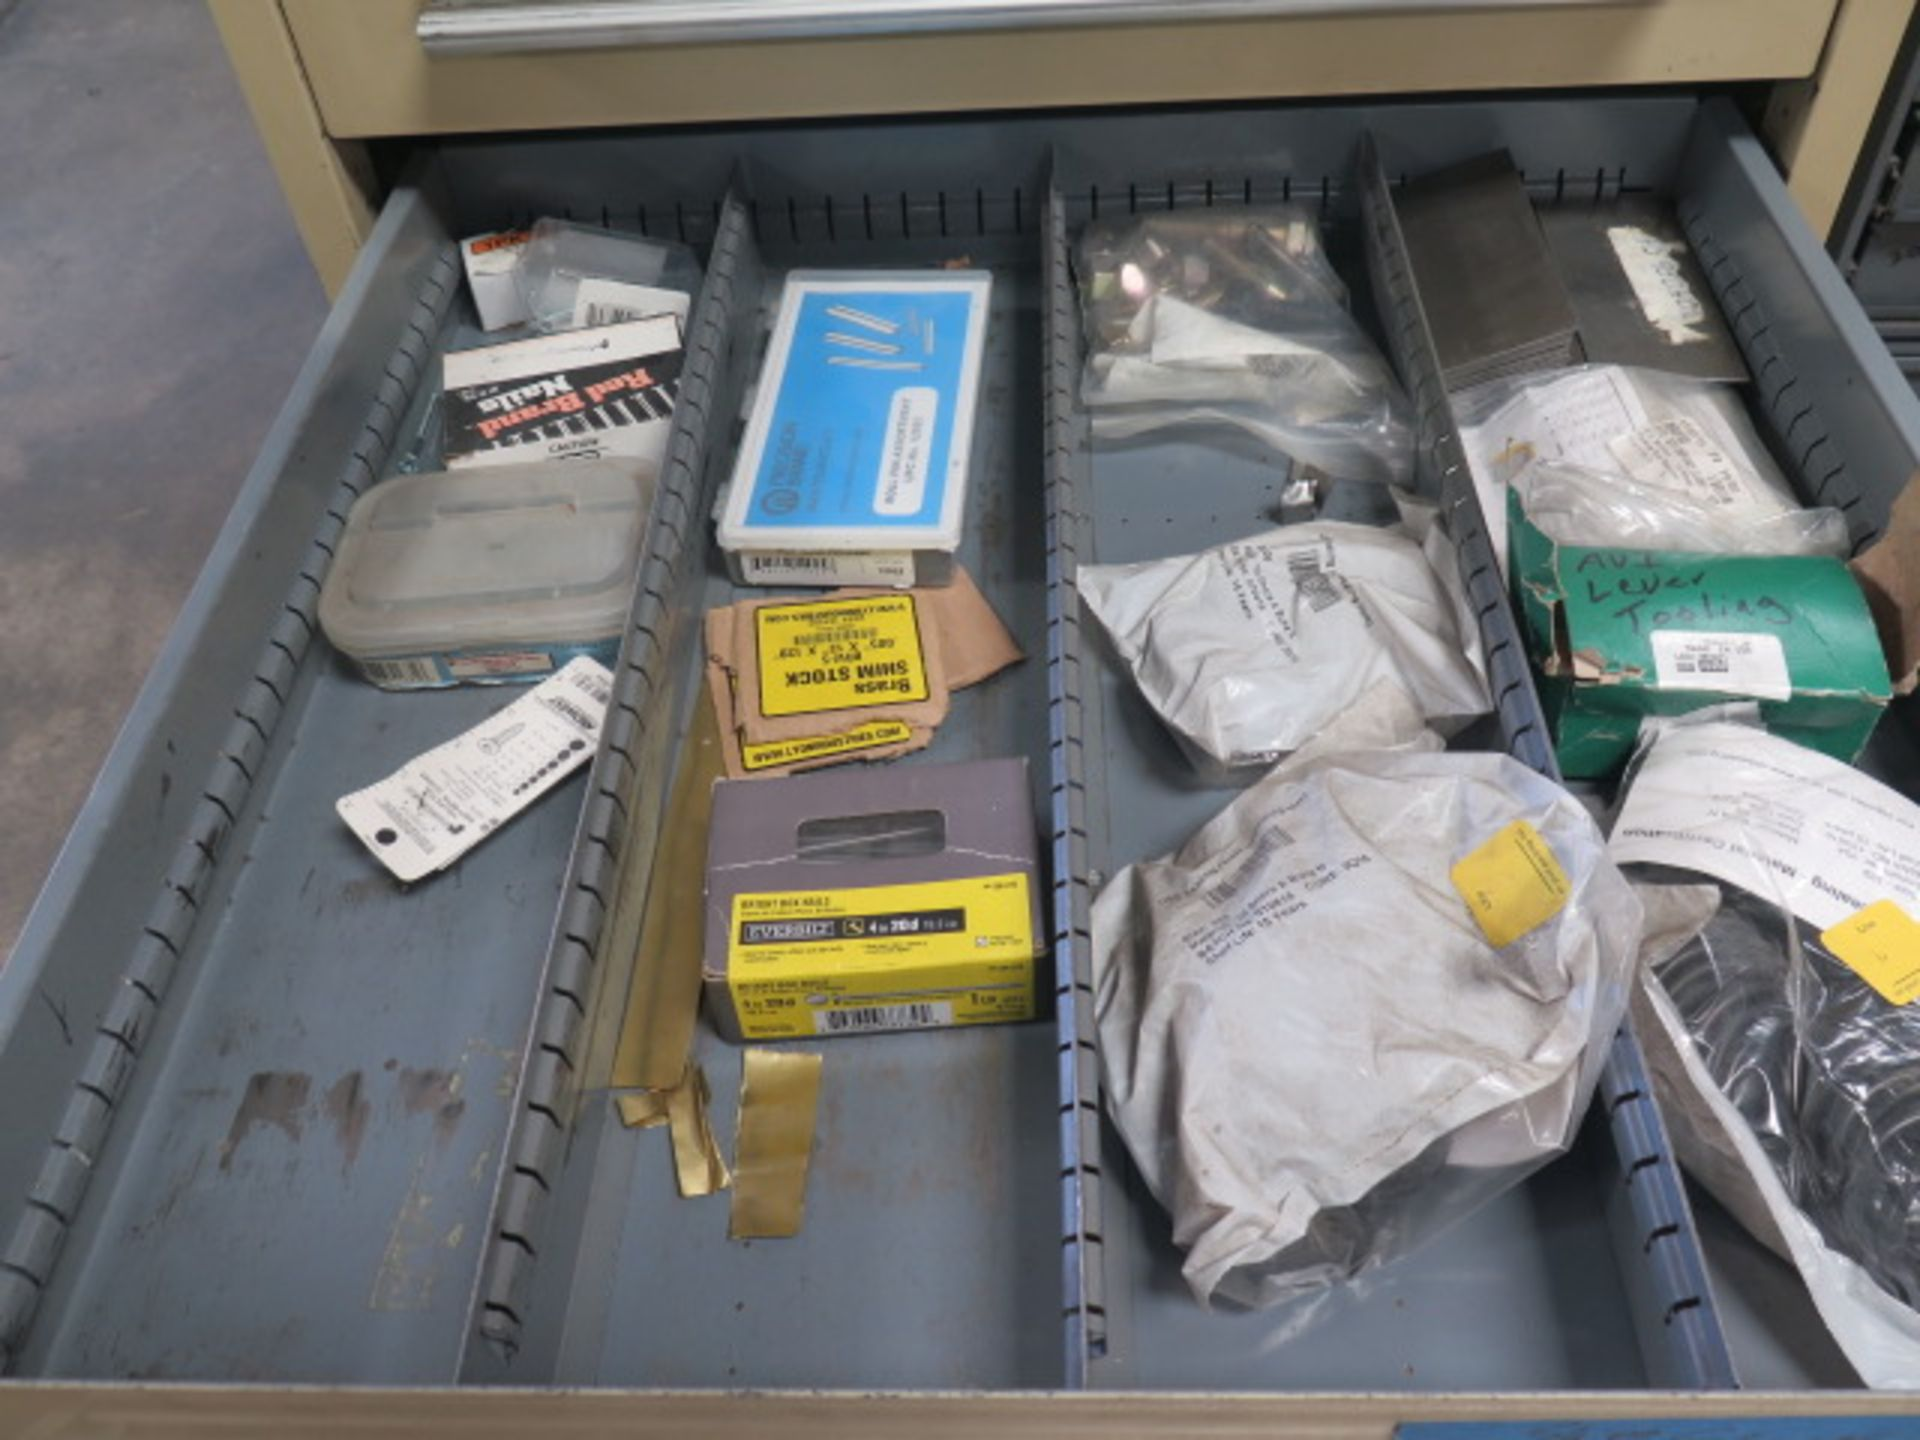 10-Drawer Tooling Cabinet w/ Hardware (SOLD AS-IS - NO WARRANTY) - Image 8 of 10